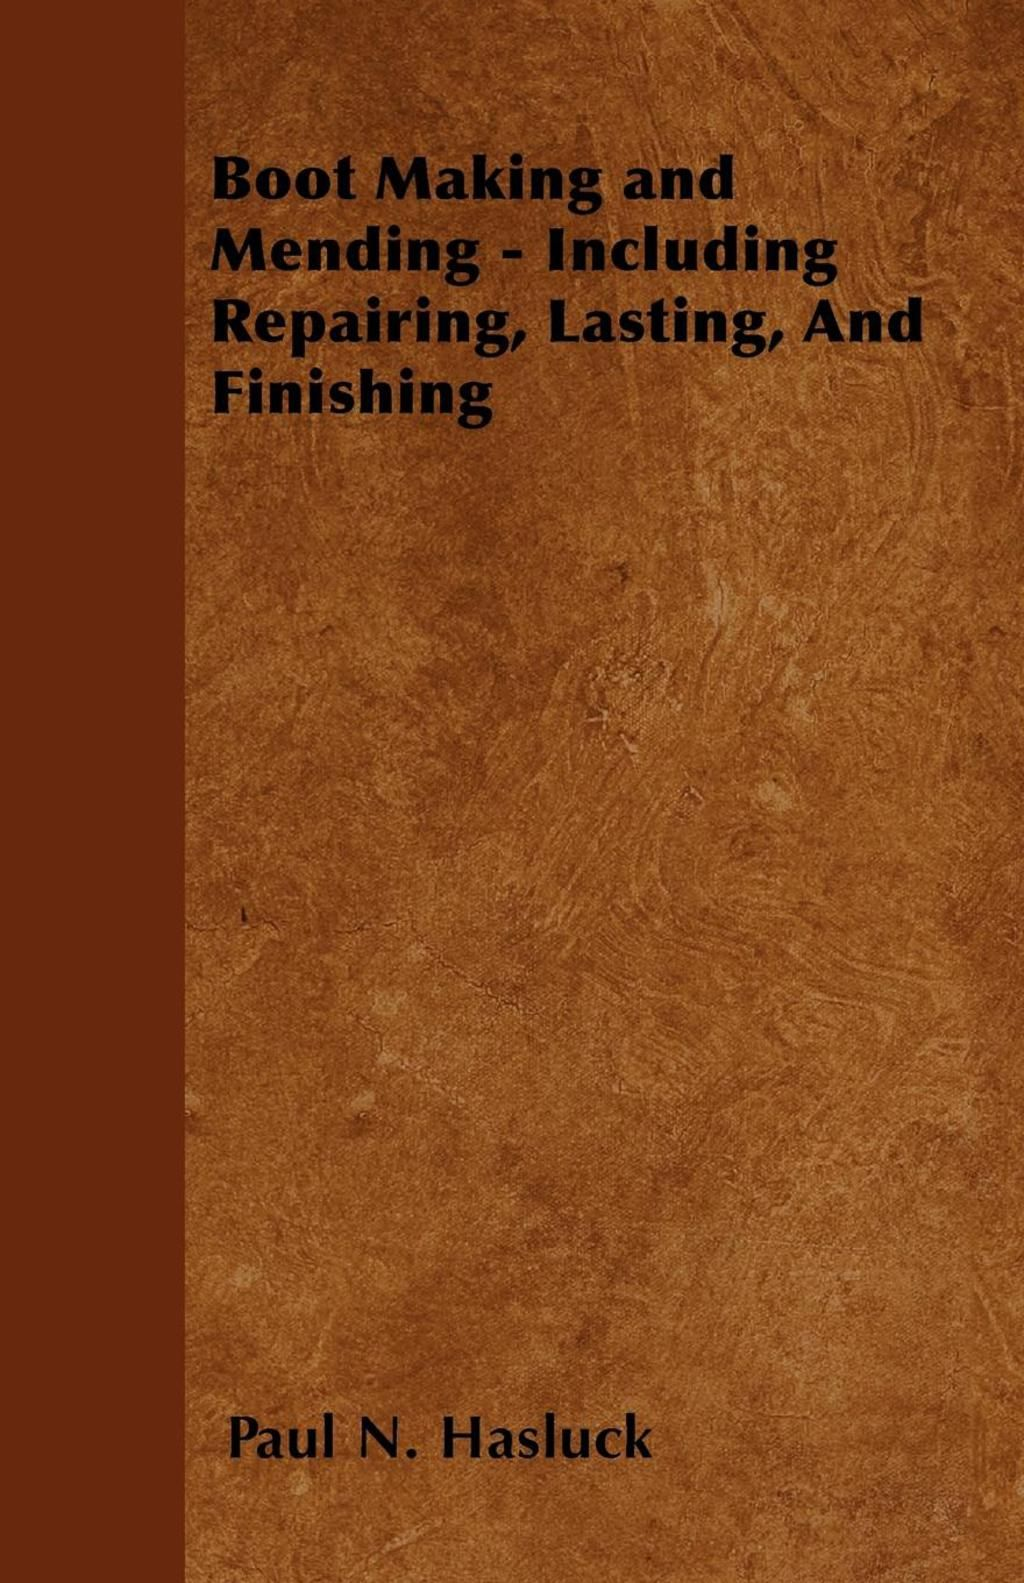 Boot Making And Mending Including Repairing Lasting And Finishing With 179 Engravings And Diagrams